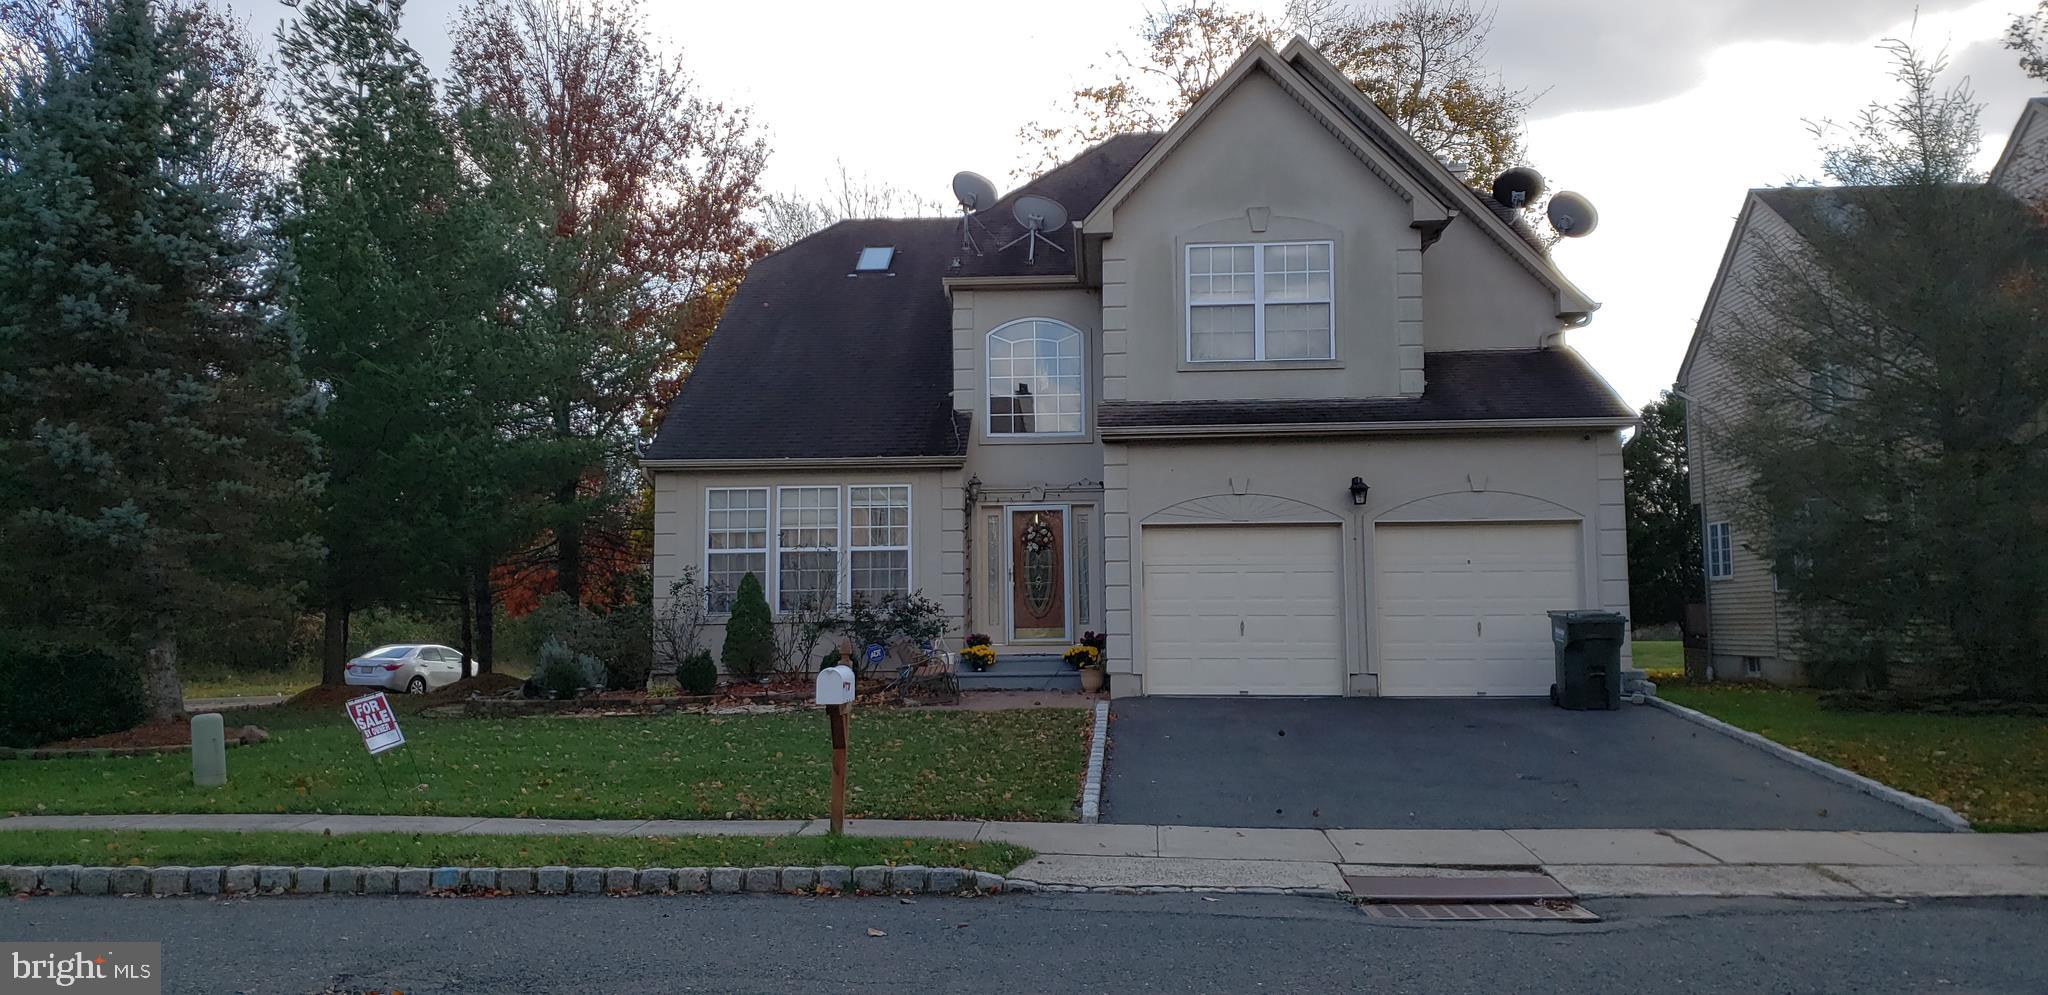 1 MCGOVERN COURT, BRIDGEWATER, NJ 08807